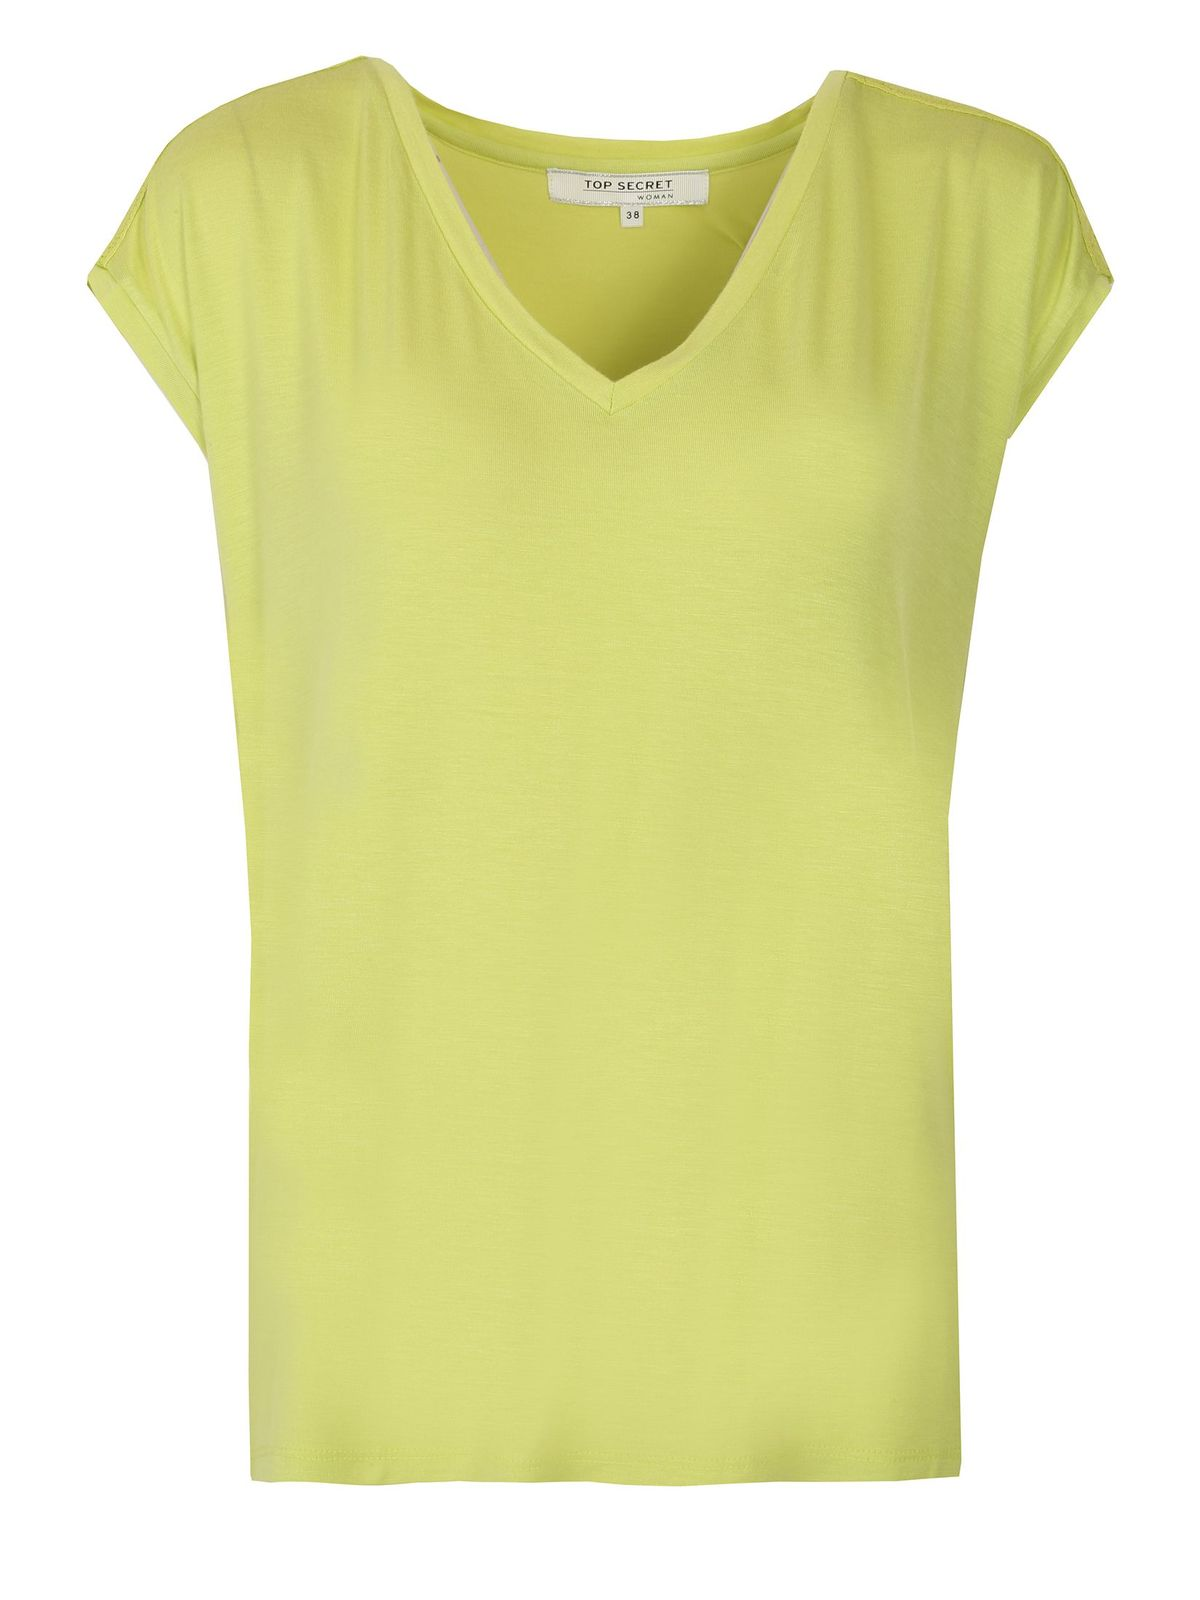 LIME T-SHIRT ΜΕ ΔΑΝΤΕΛΑ - 331570